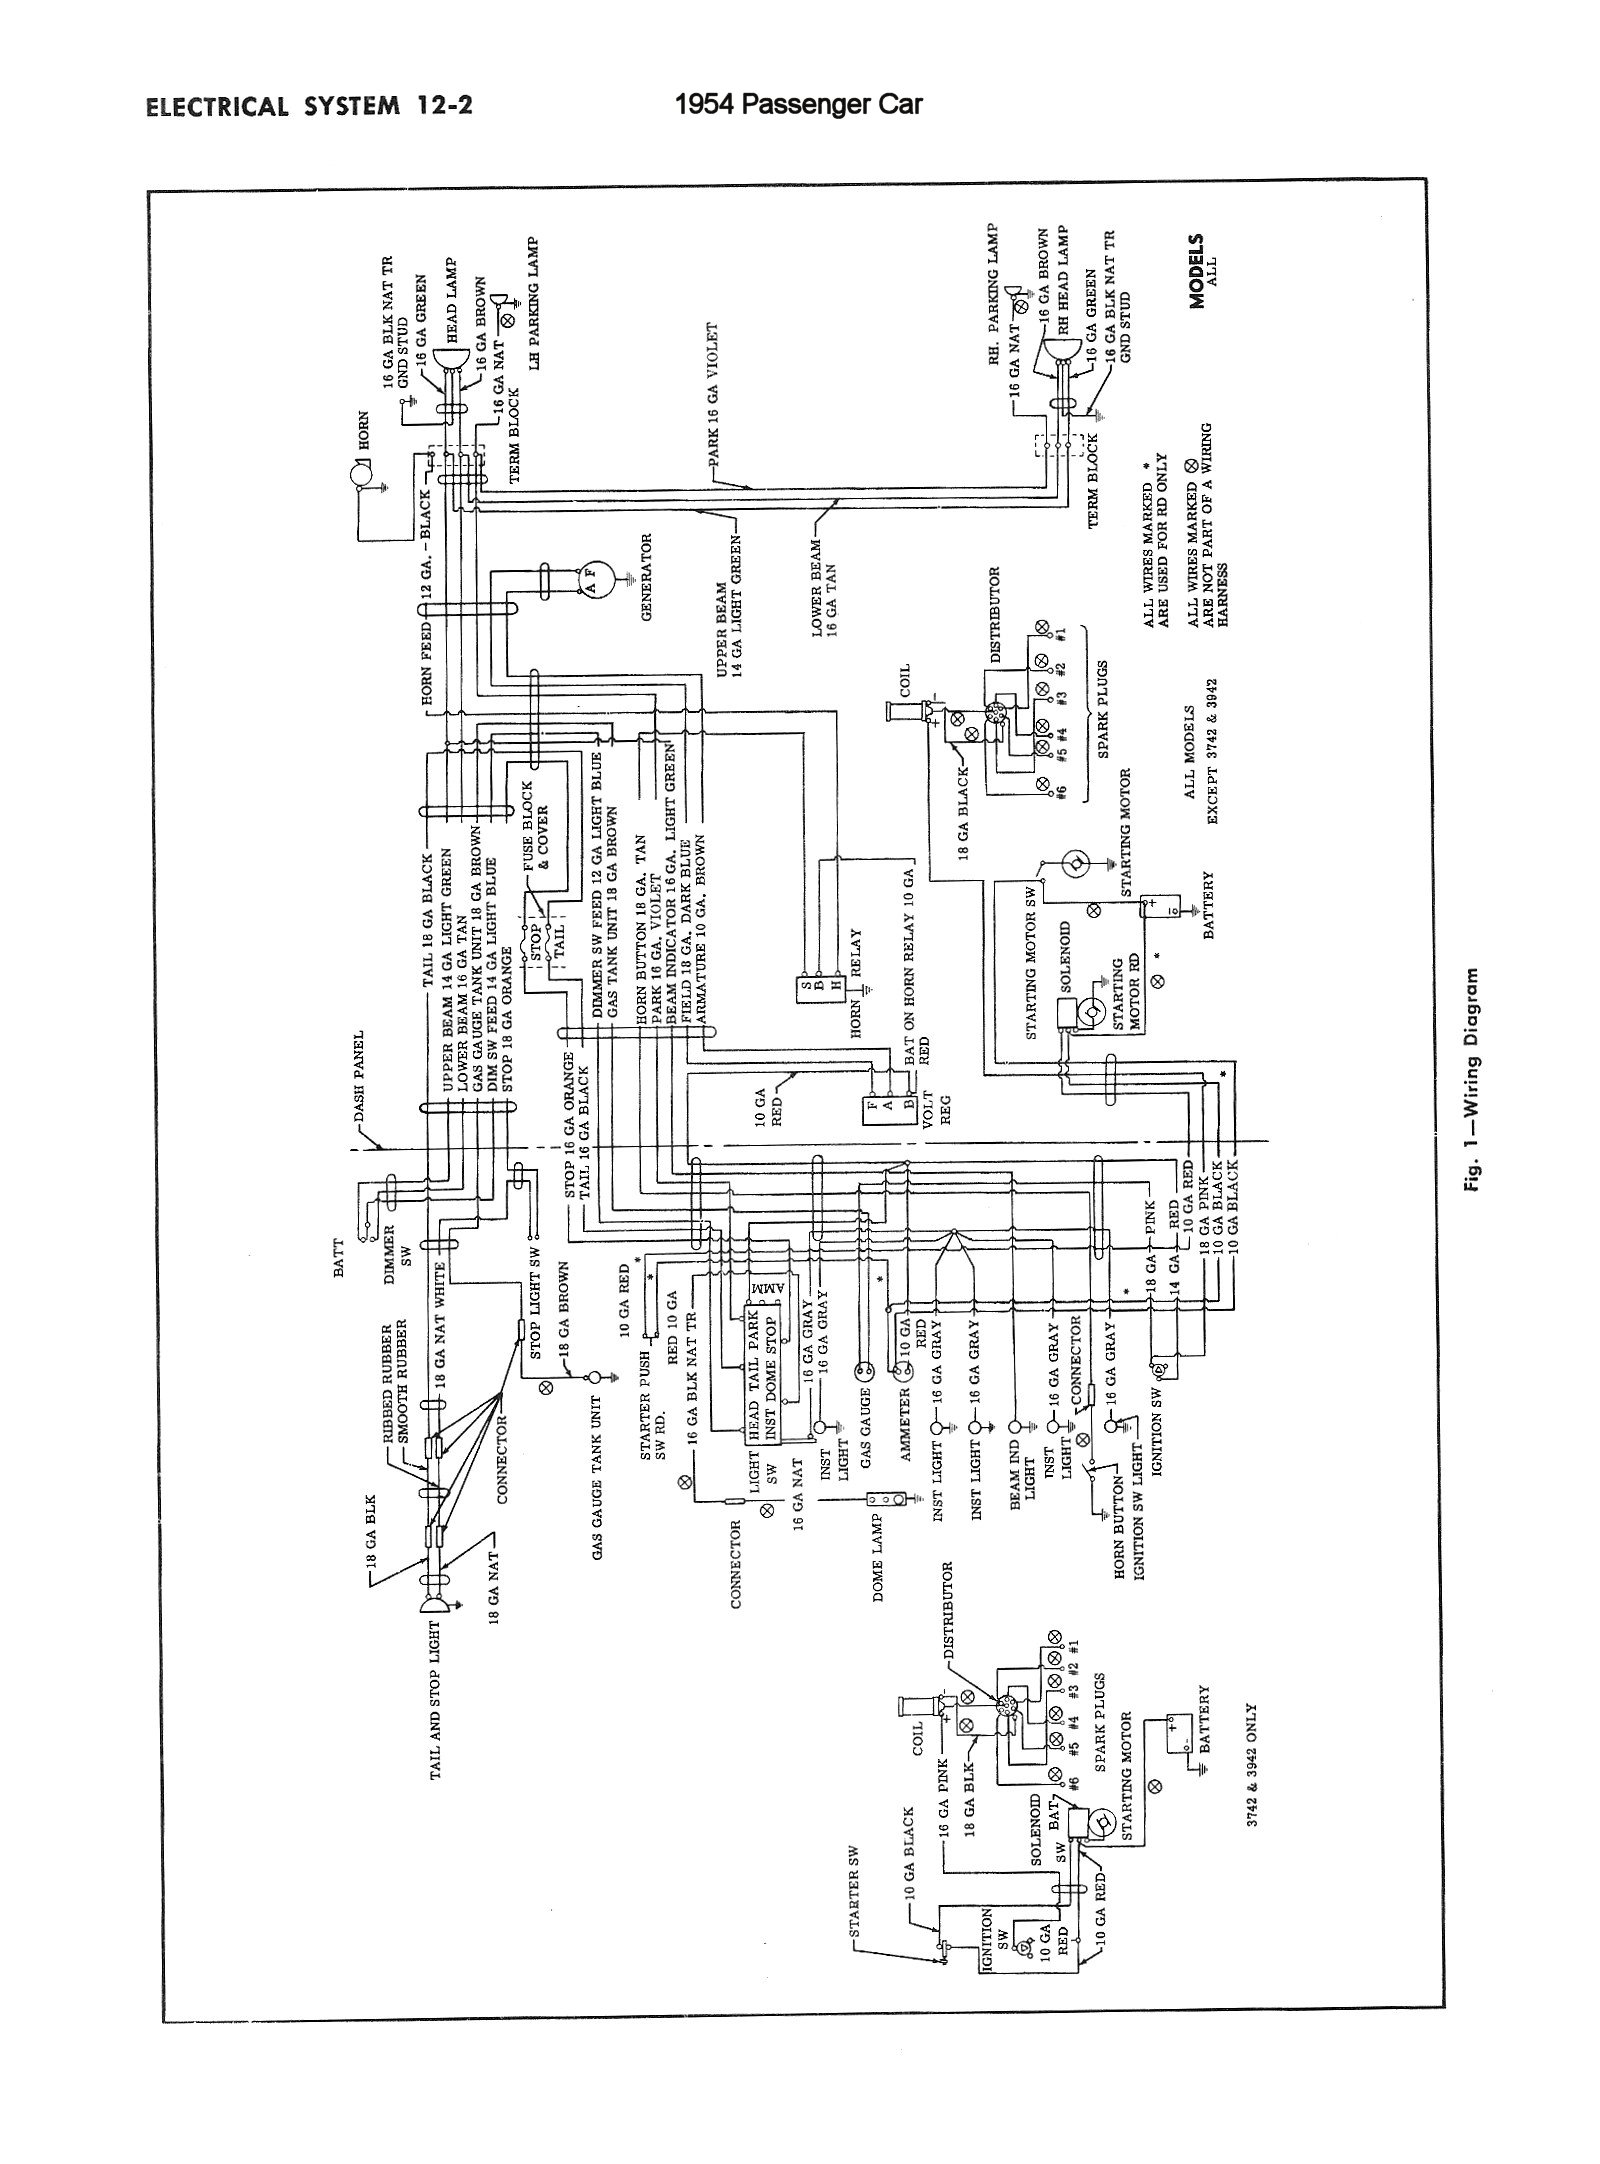 52 chevy pickup wiring diagram technical diagrams